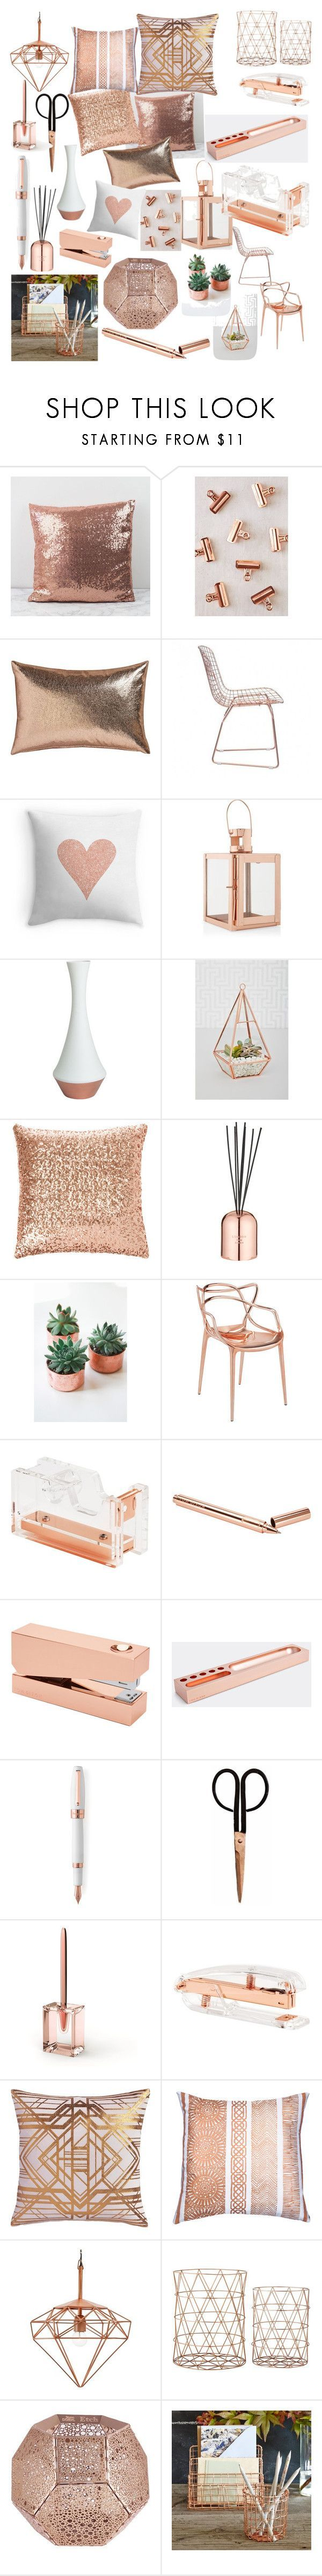 best what up homesdecor images on pinterest house